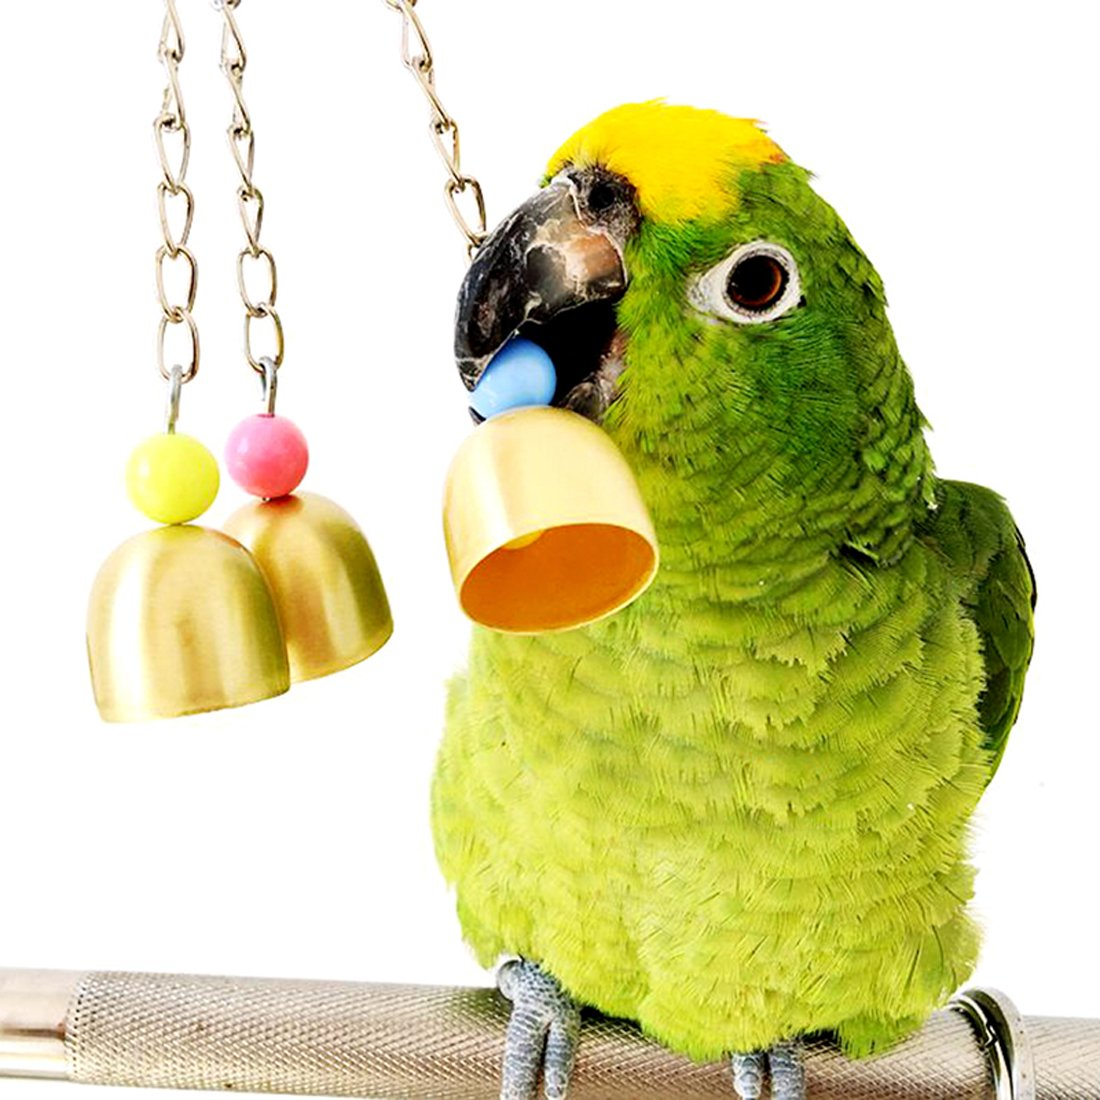 Lovely Colorful Hanging Bell Pet Bird Toys Chew Parrot Ringer Hanging Swing Cage Toy For Cockatiel Parakeet Pet Bird Supplies To Reduce Body Weight And Prolong Life Pet Products Home & Garden